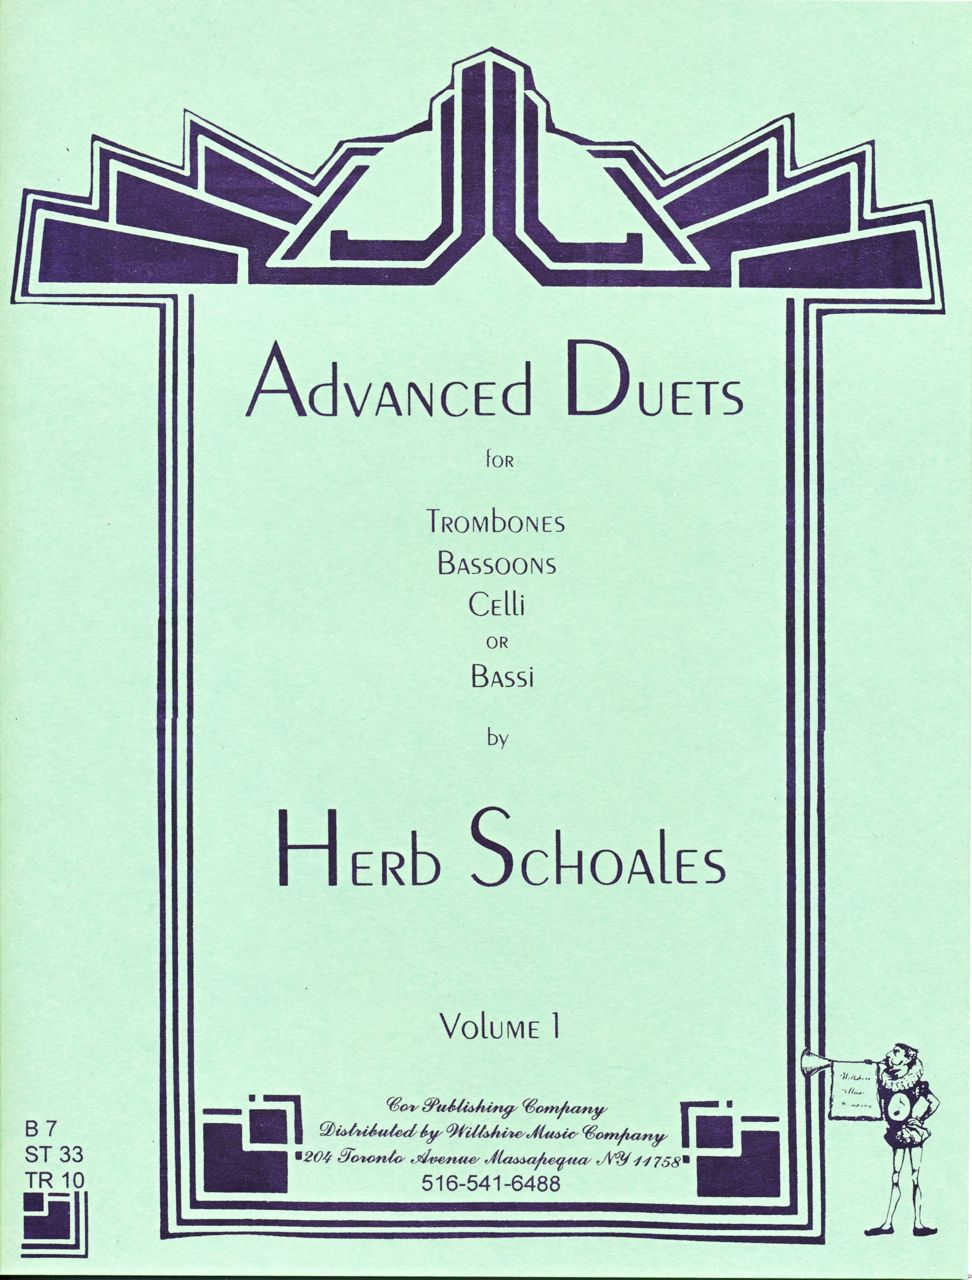 Advanced Duets for Lower Voiced Instruments, Volume 1 - SCHOALES